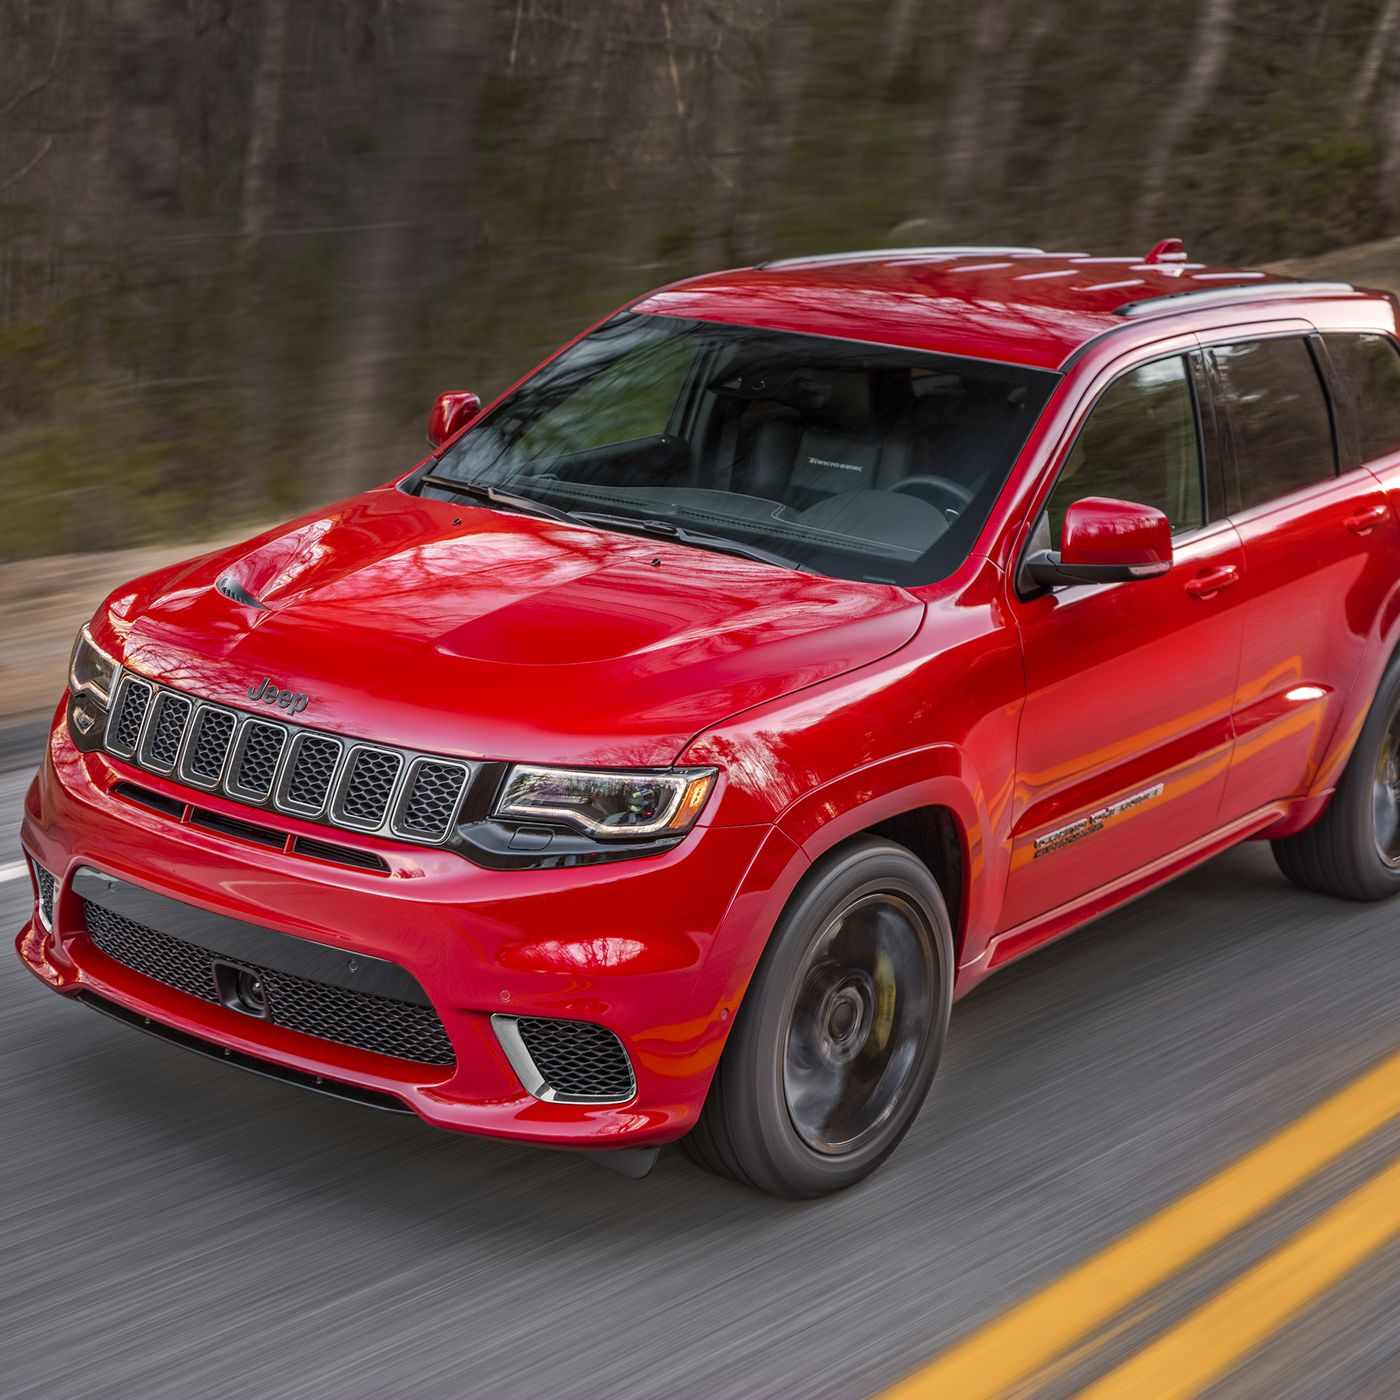 Jeep says the Grand Cherokee Trackhawk is the fastest SUV ever The